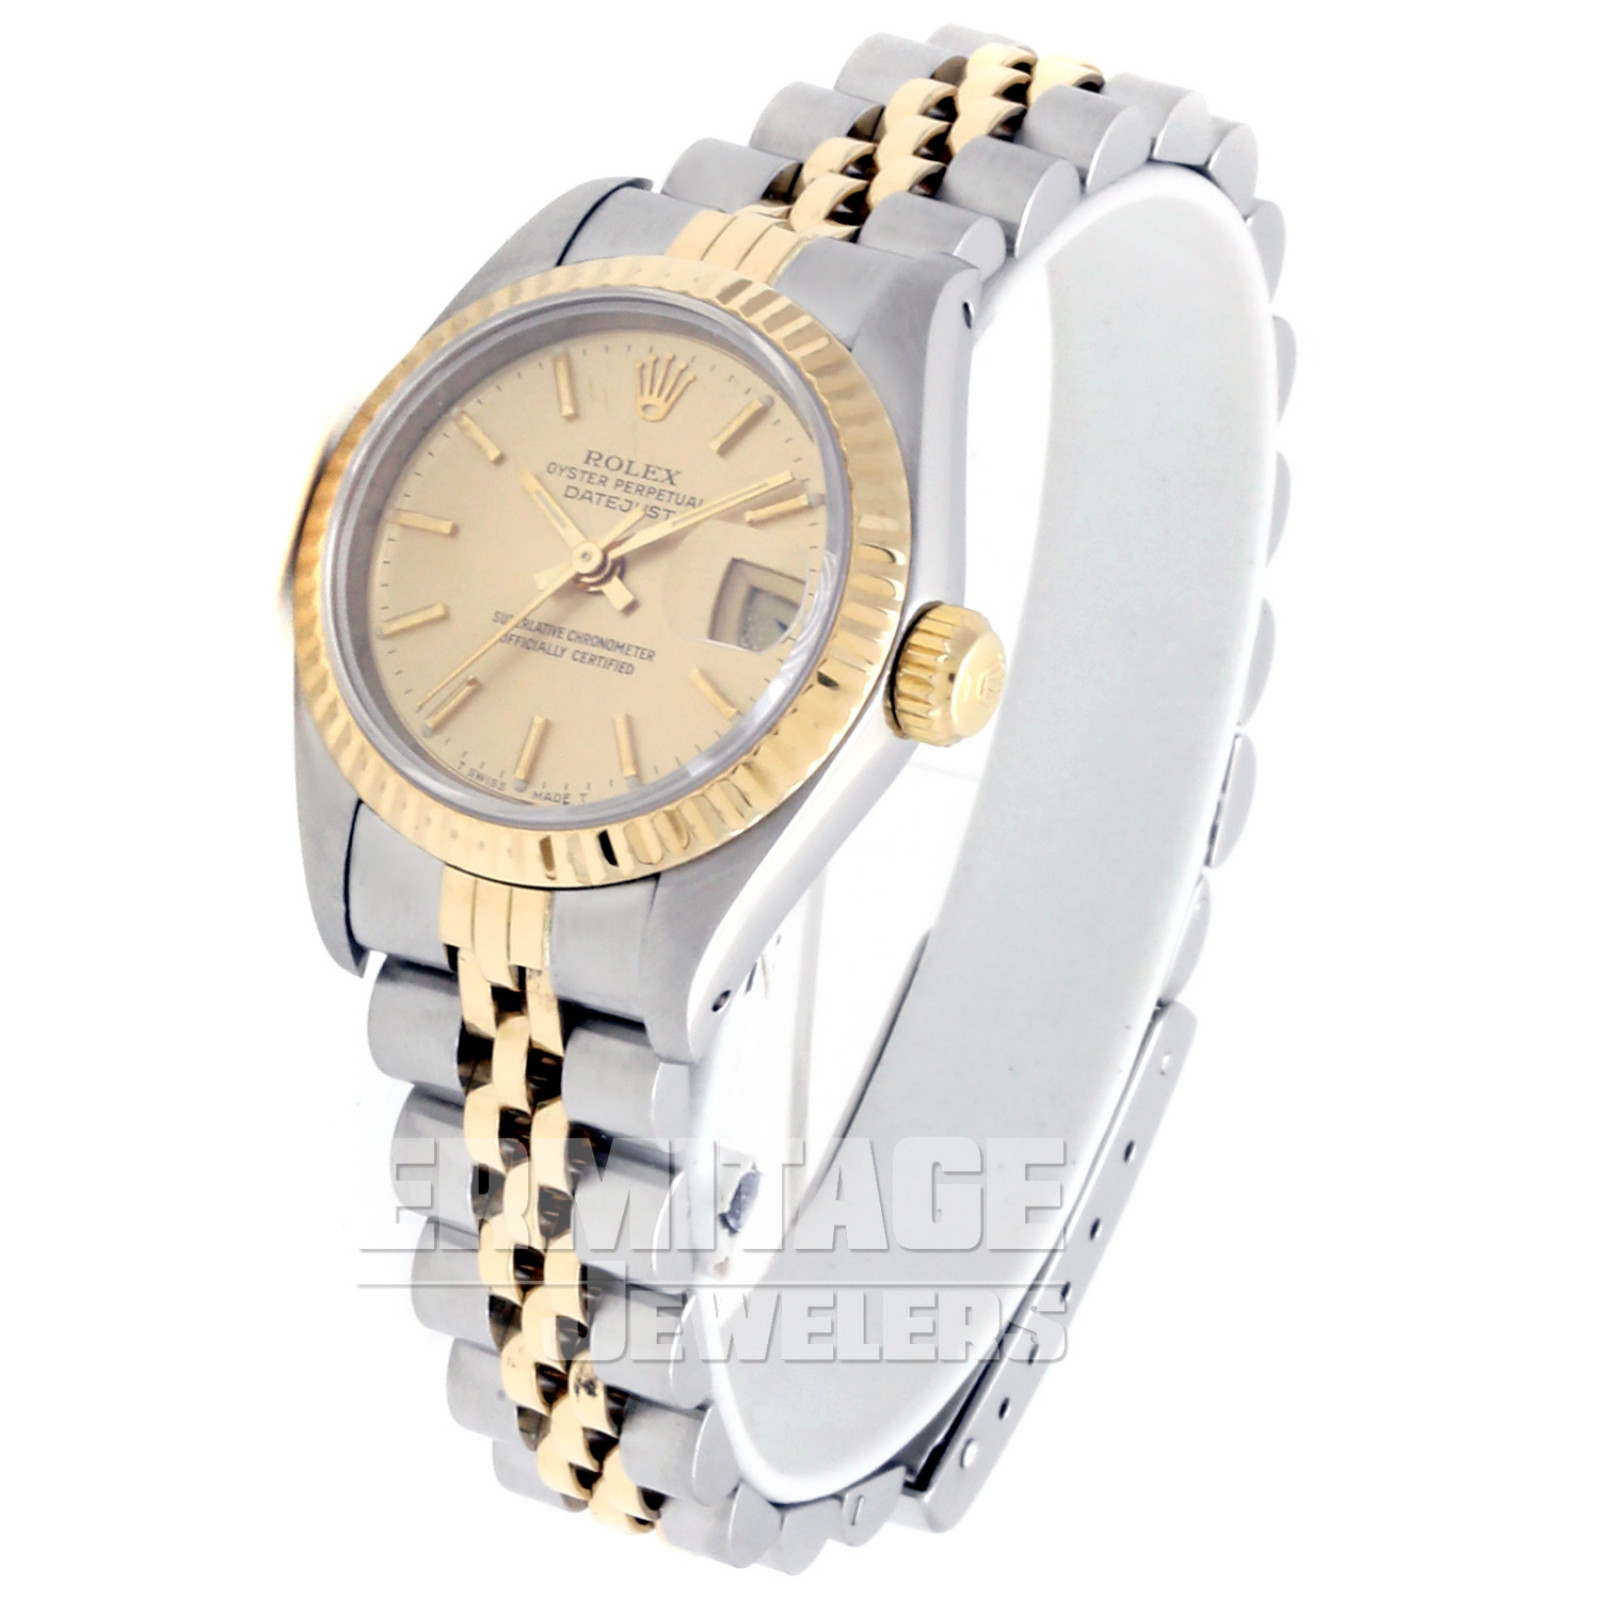 Pre-Owned Gold & Steel Rolex Datejust 69173 with Champagne Dial